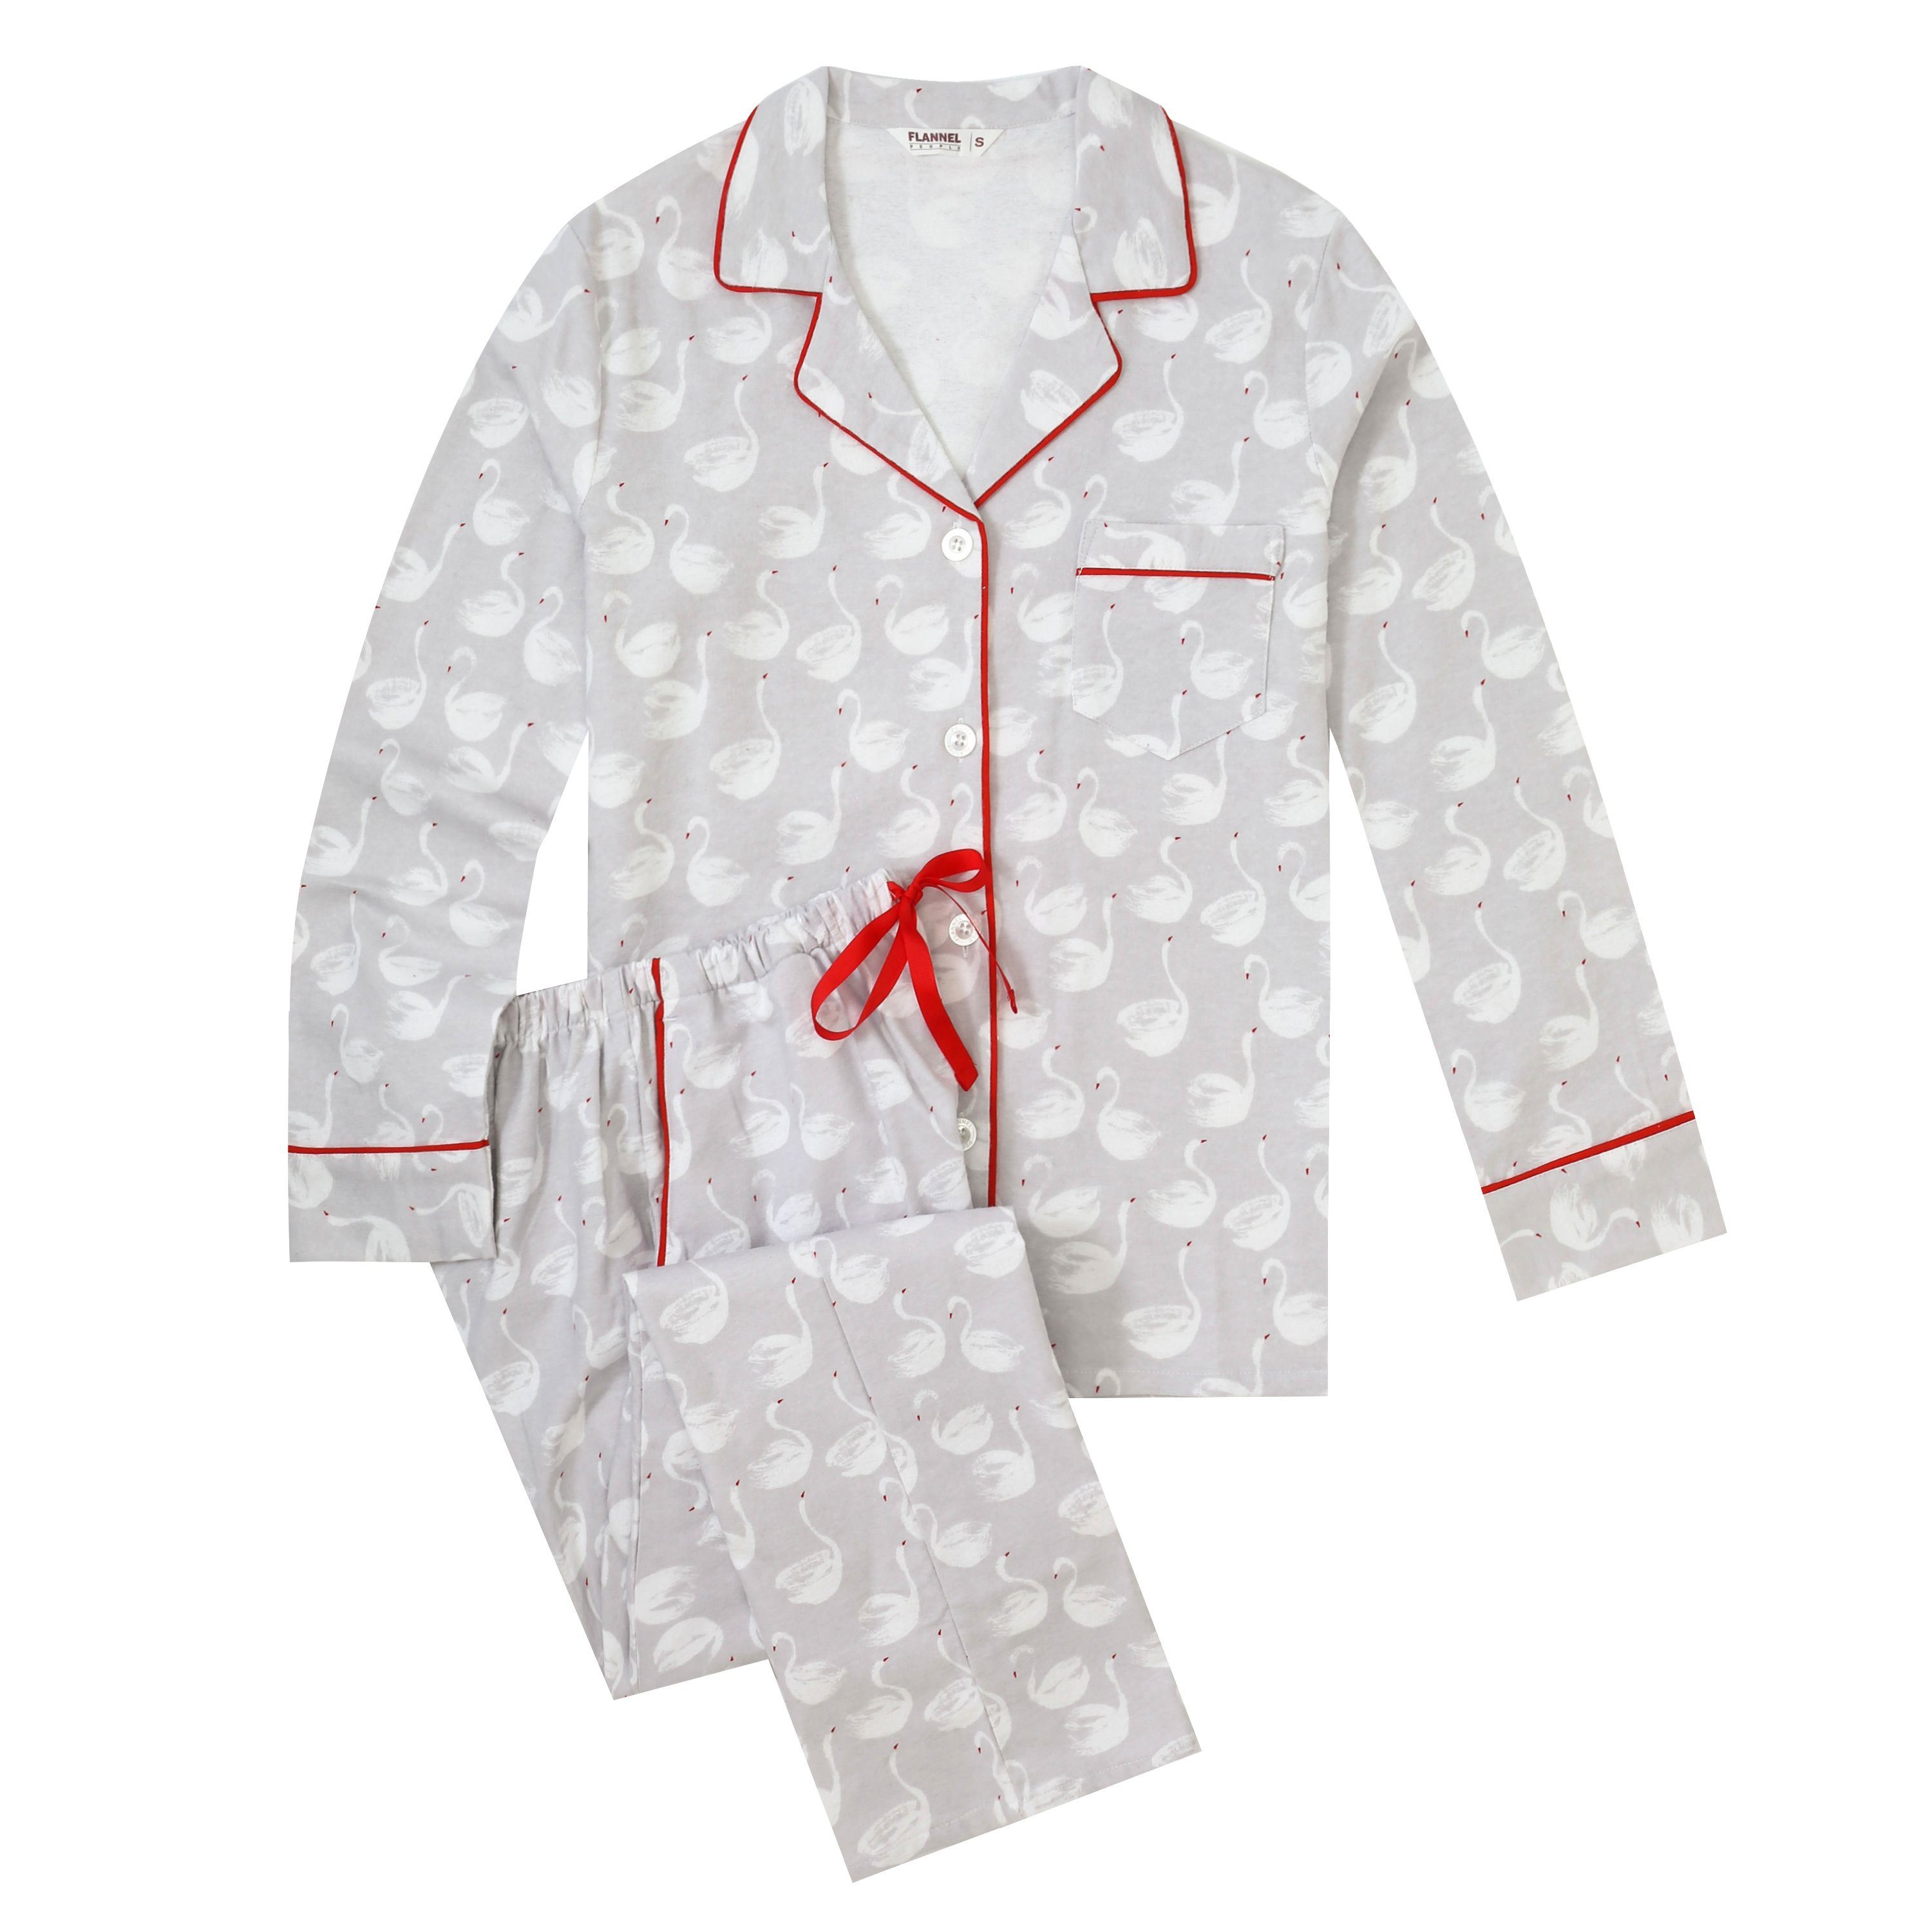 Flannel People Women Pajamas Set - 100% Cotton Flannel Pajamas Women Warm PJs Set - Swans - Gray-White